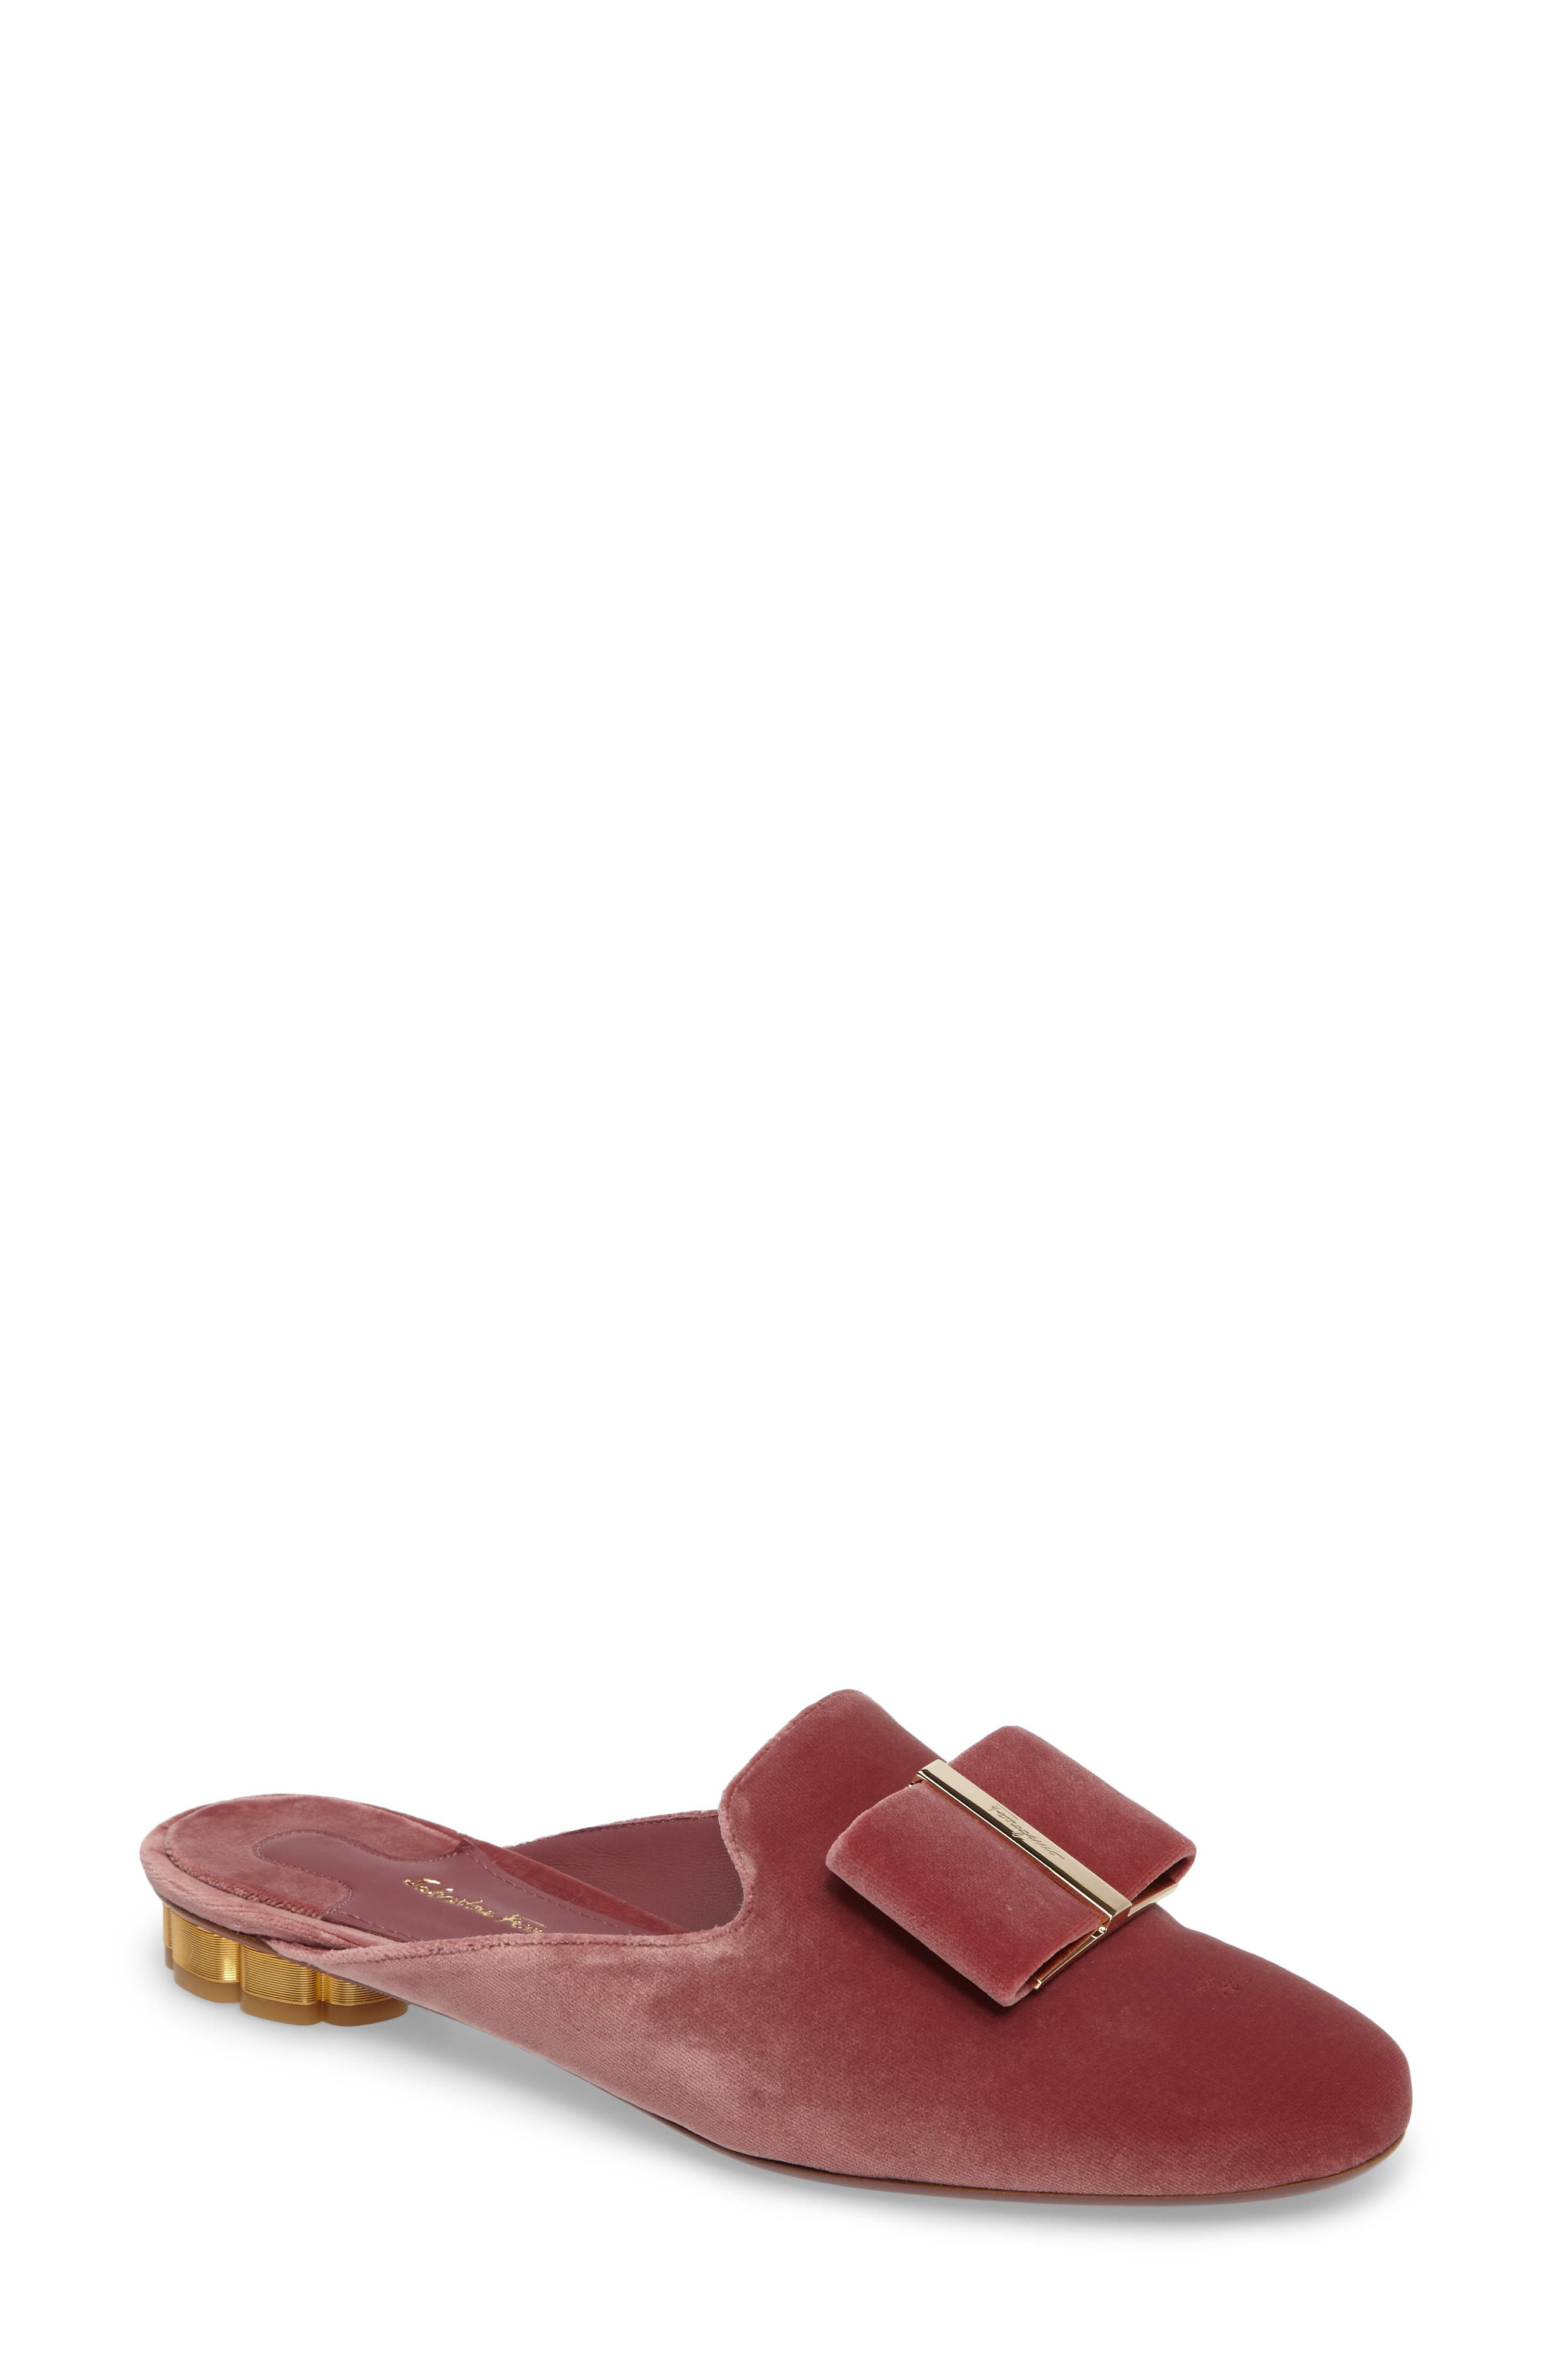 Salvatore Ferragamo Backless Loafer Mule (Women)